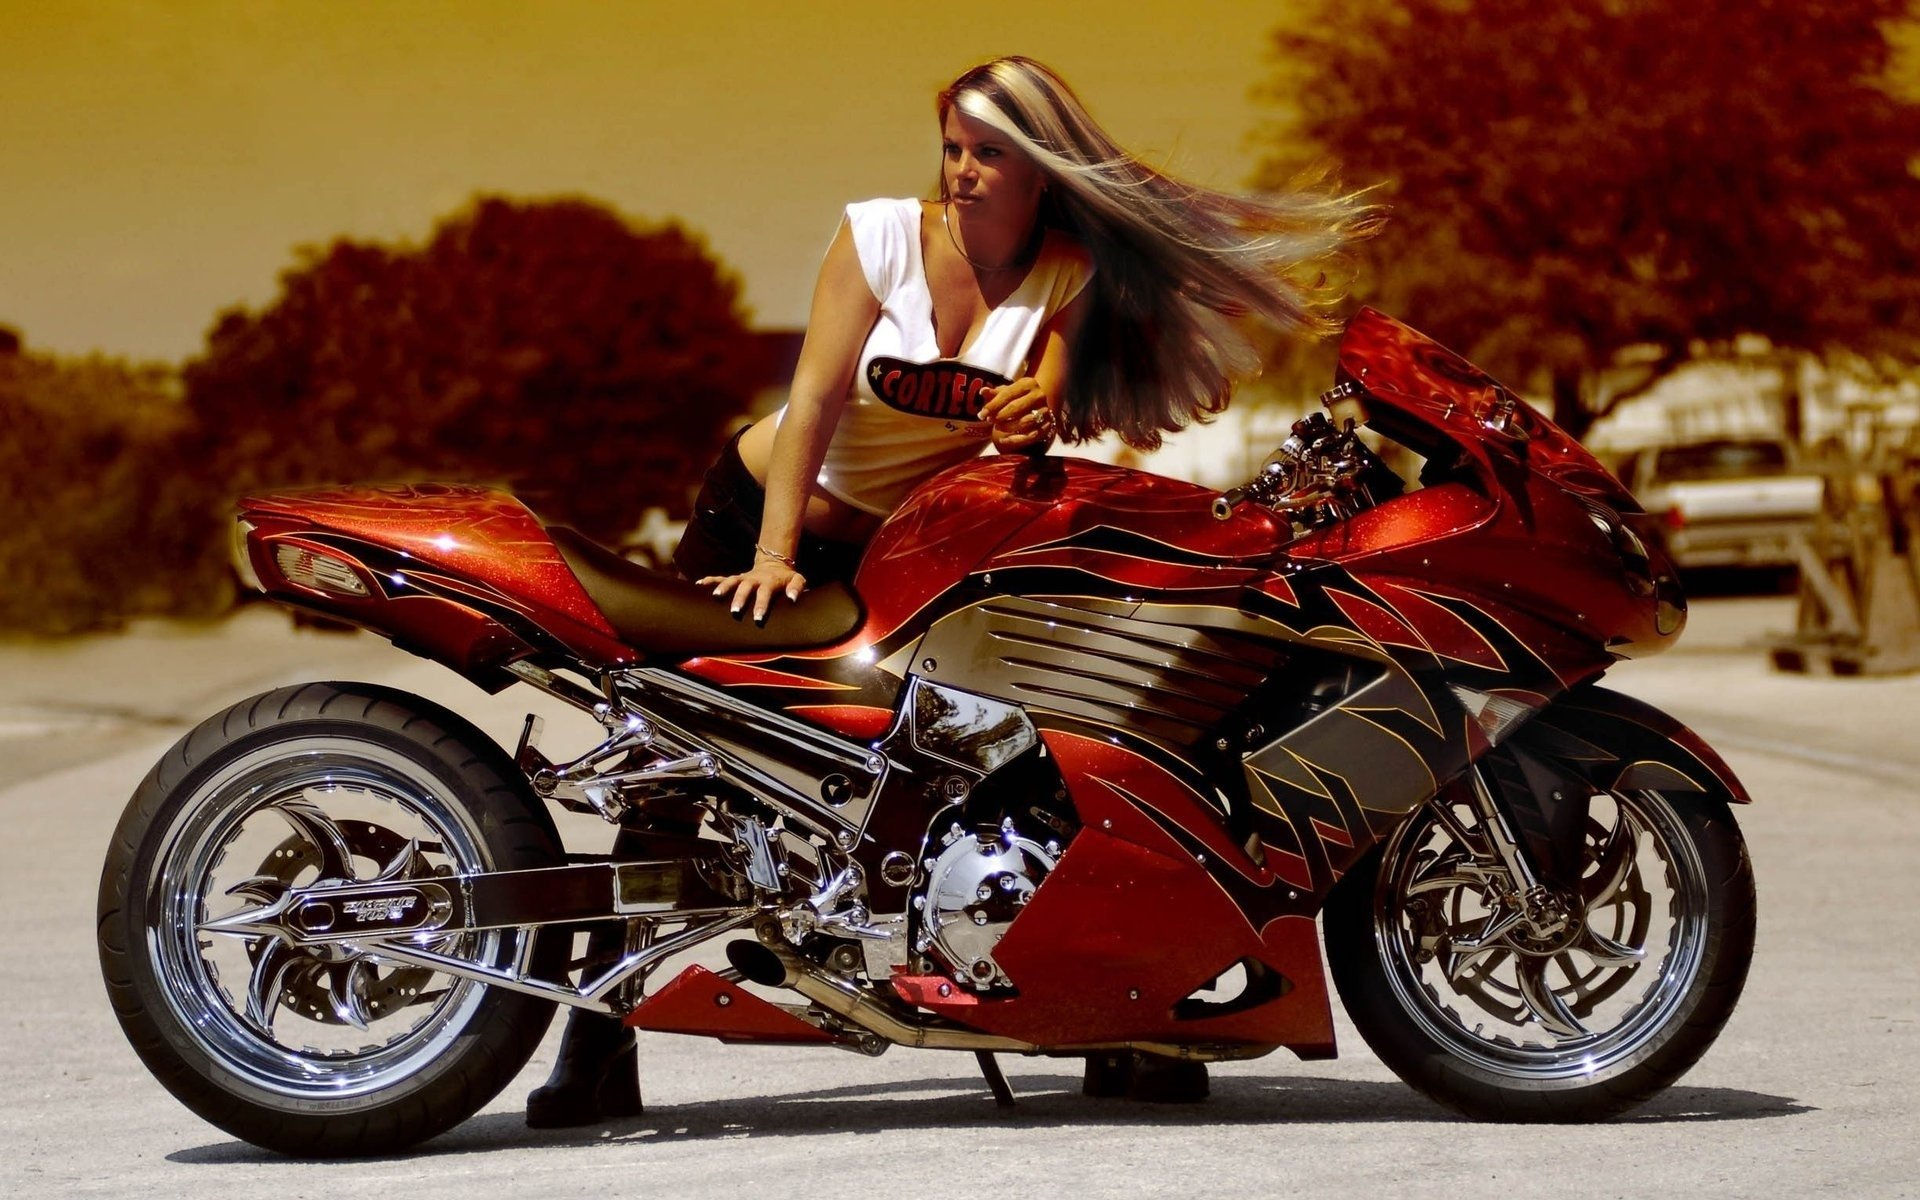 90 girls & motorcycles hd wallpapers | background images - wallpaper